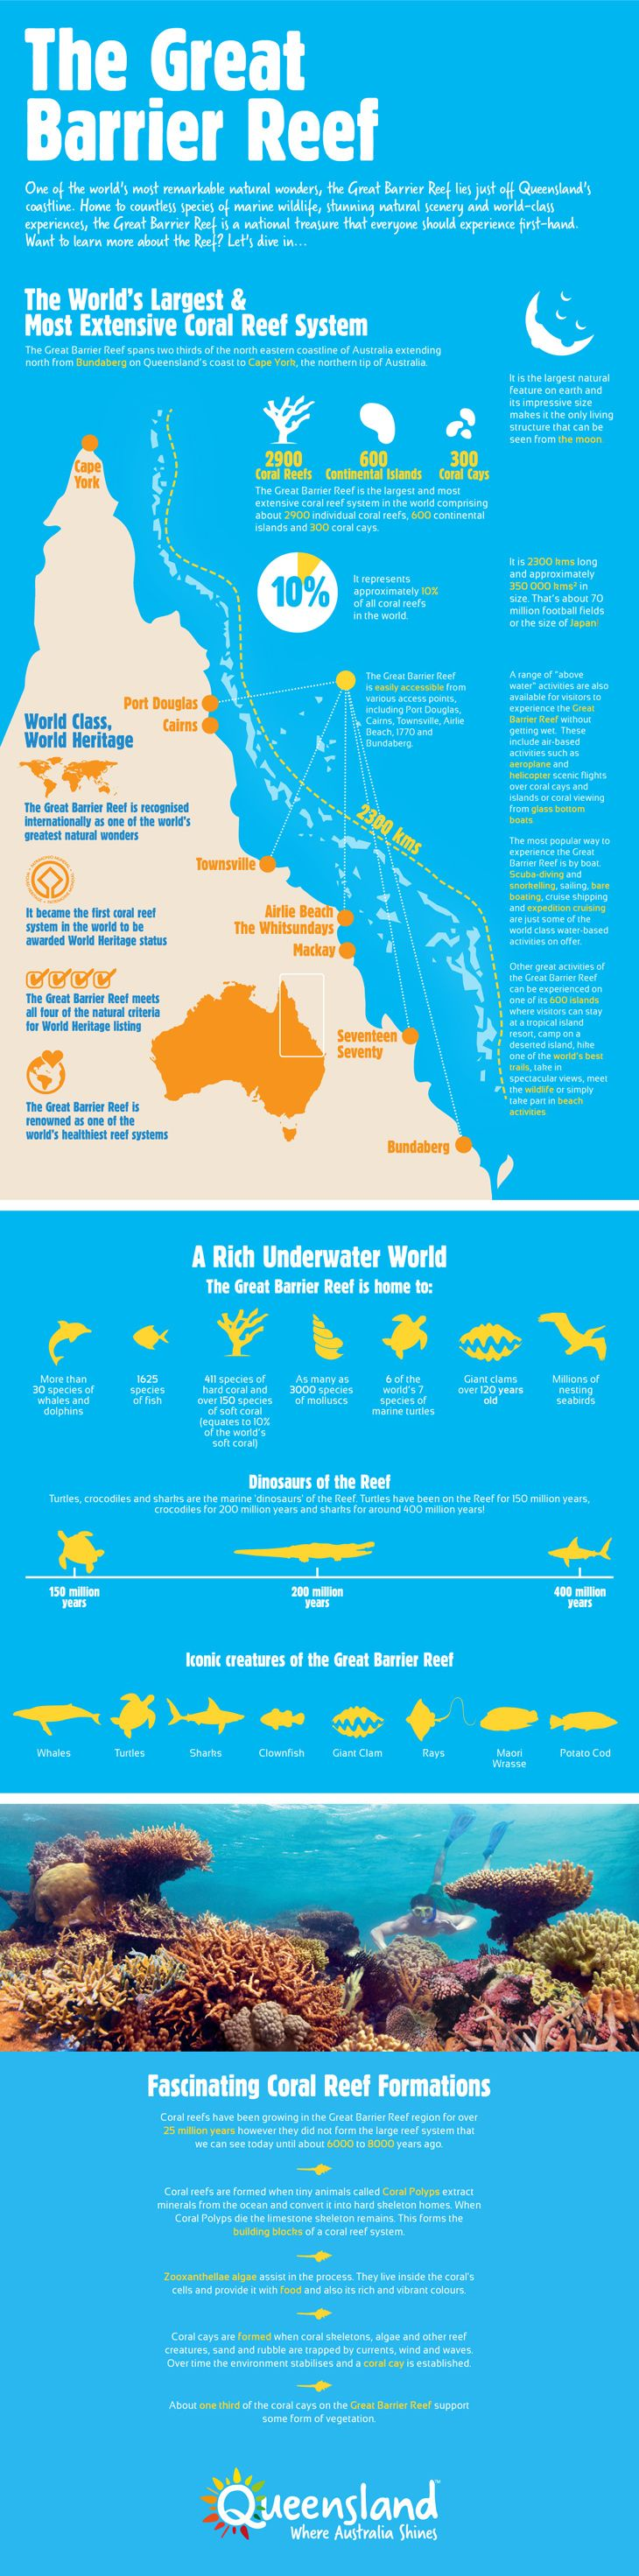 This person has all boards of Queesnsland; Austrailia.......Here's some fast facts about one of the world's most remarkable wonders - The Great Barrier Reef. Find more fast facts here: http://j.mp/IiDaxe